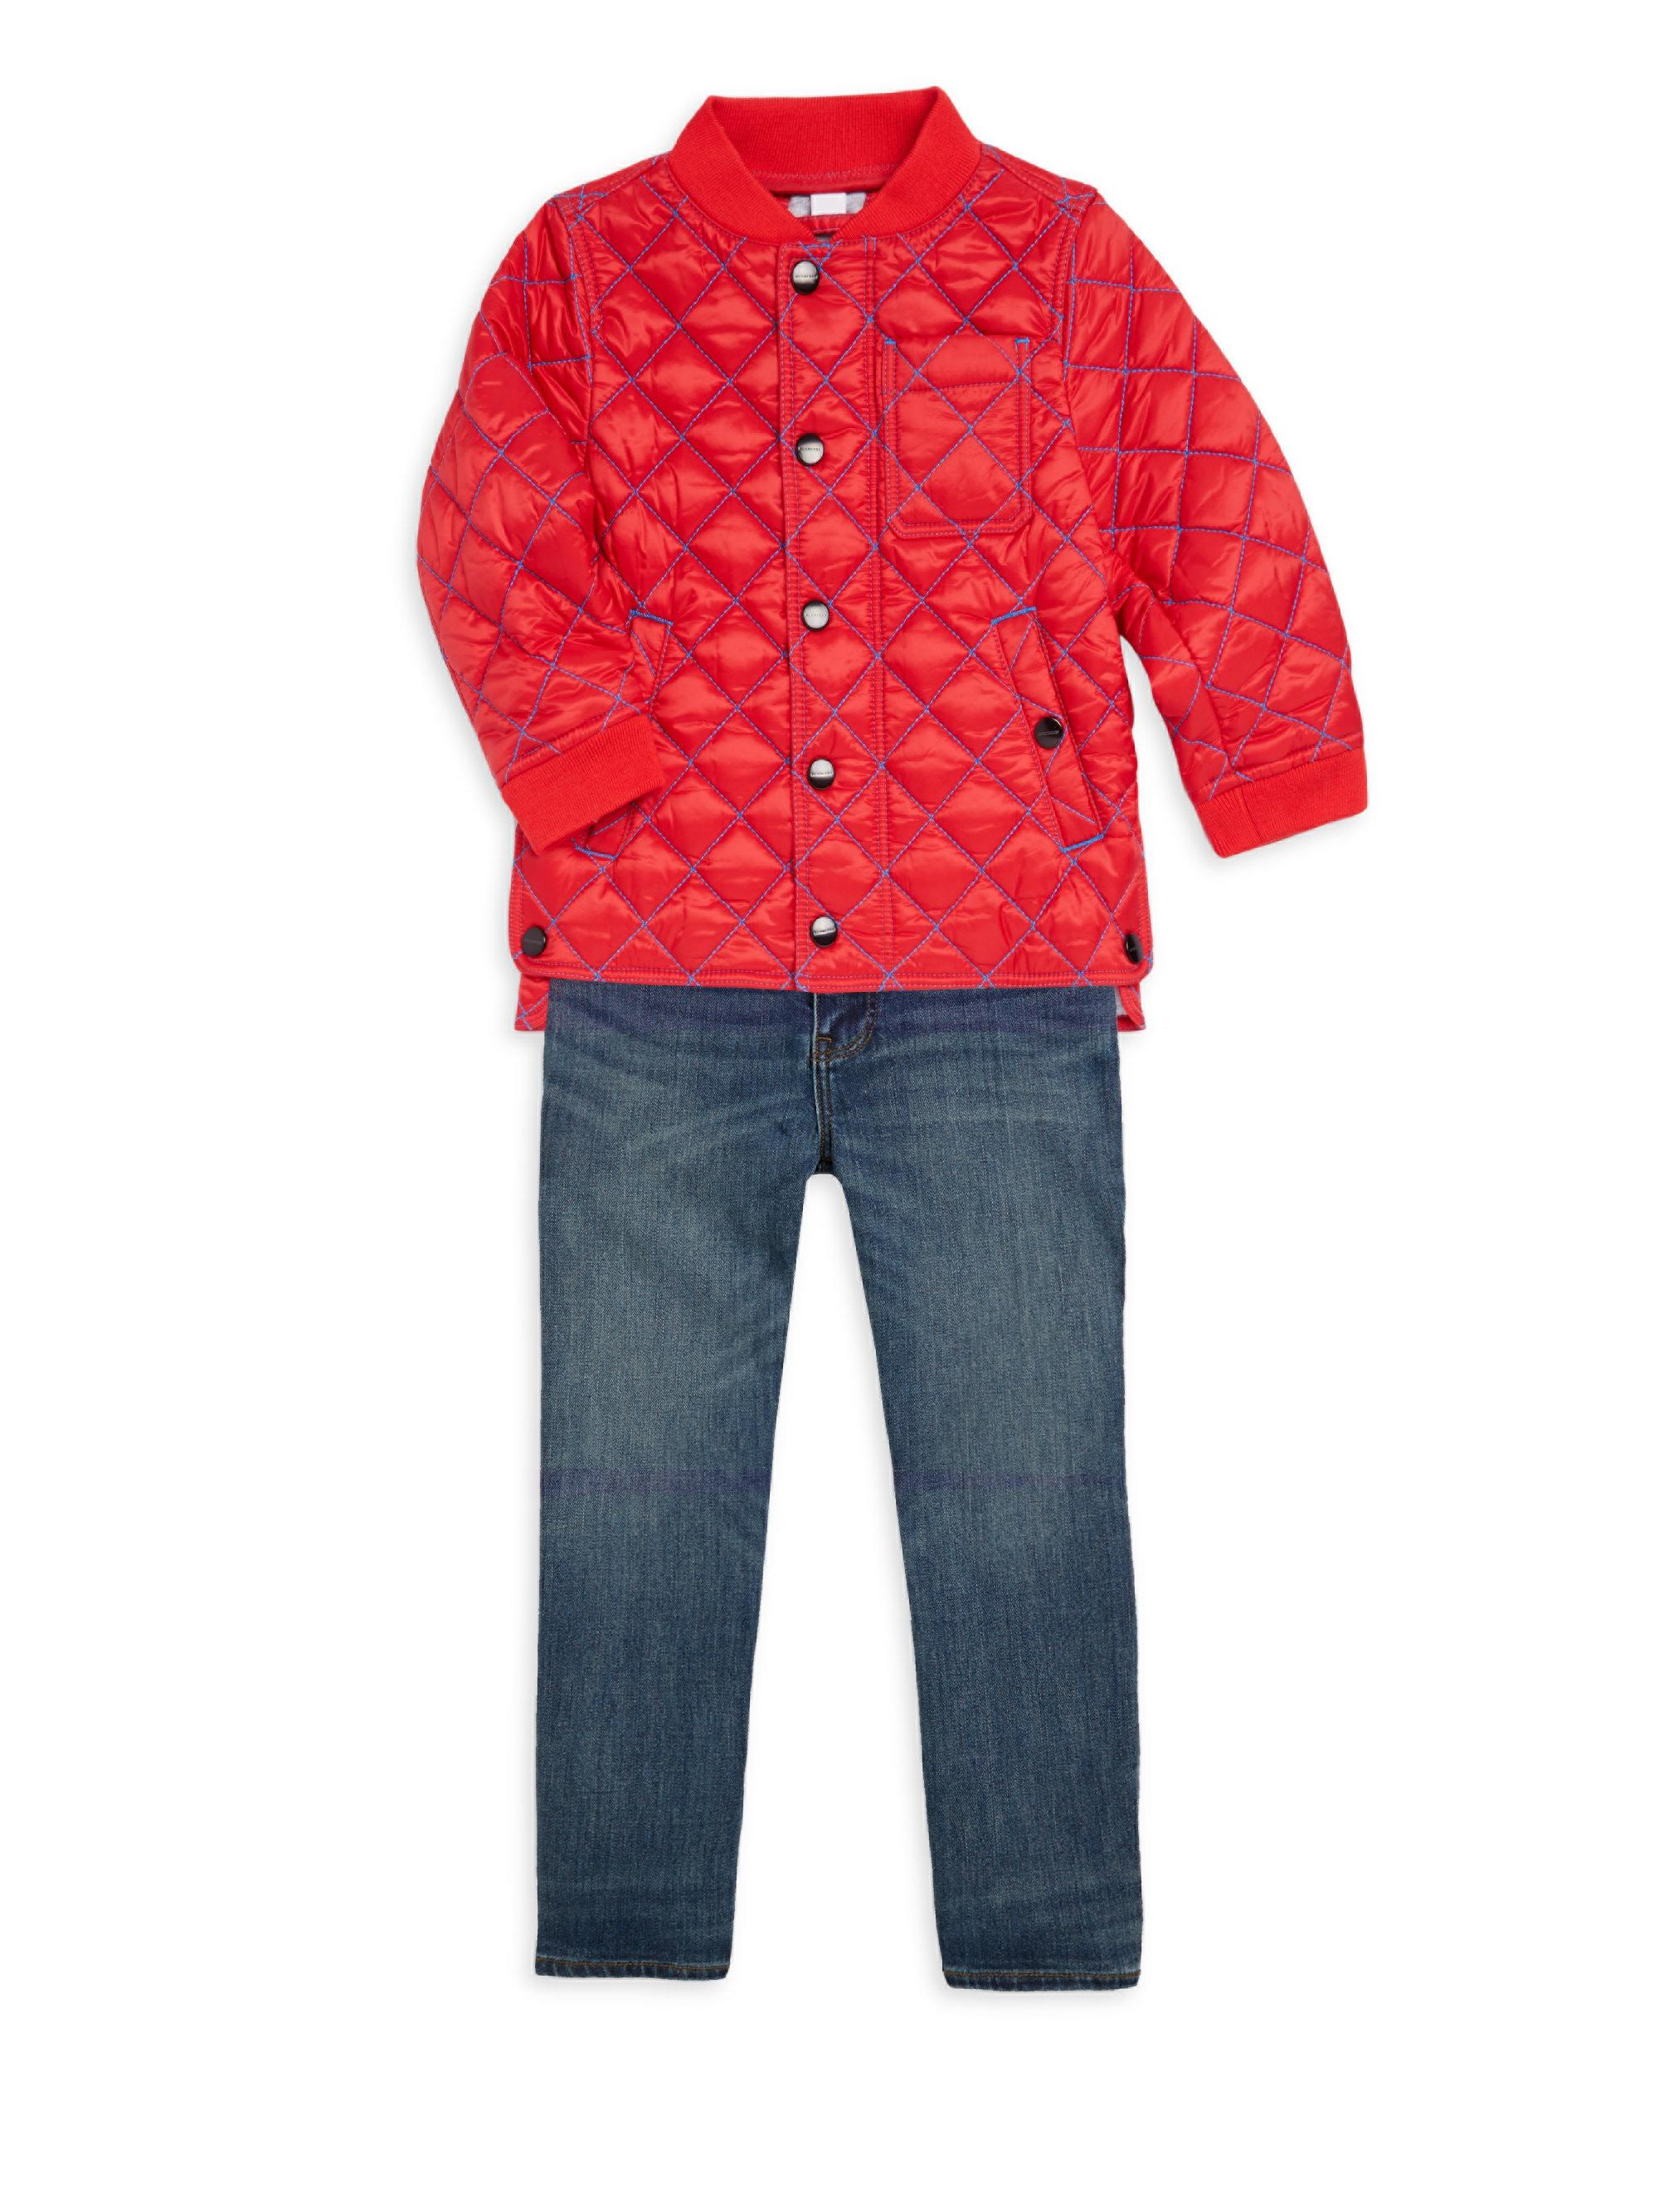 7f3979a4c Burberry Baby Boy's & Little Boy's Quilted Bomber Jacket in Red for ...